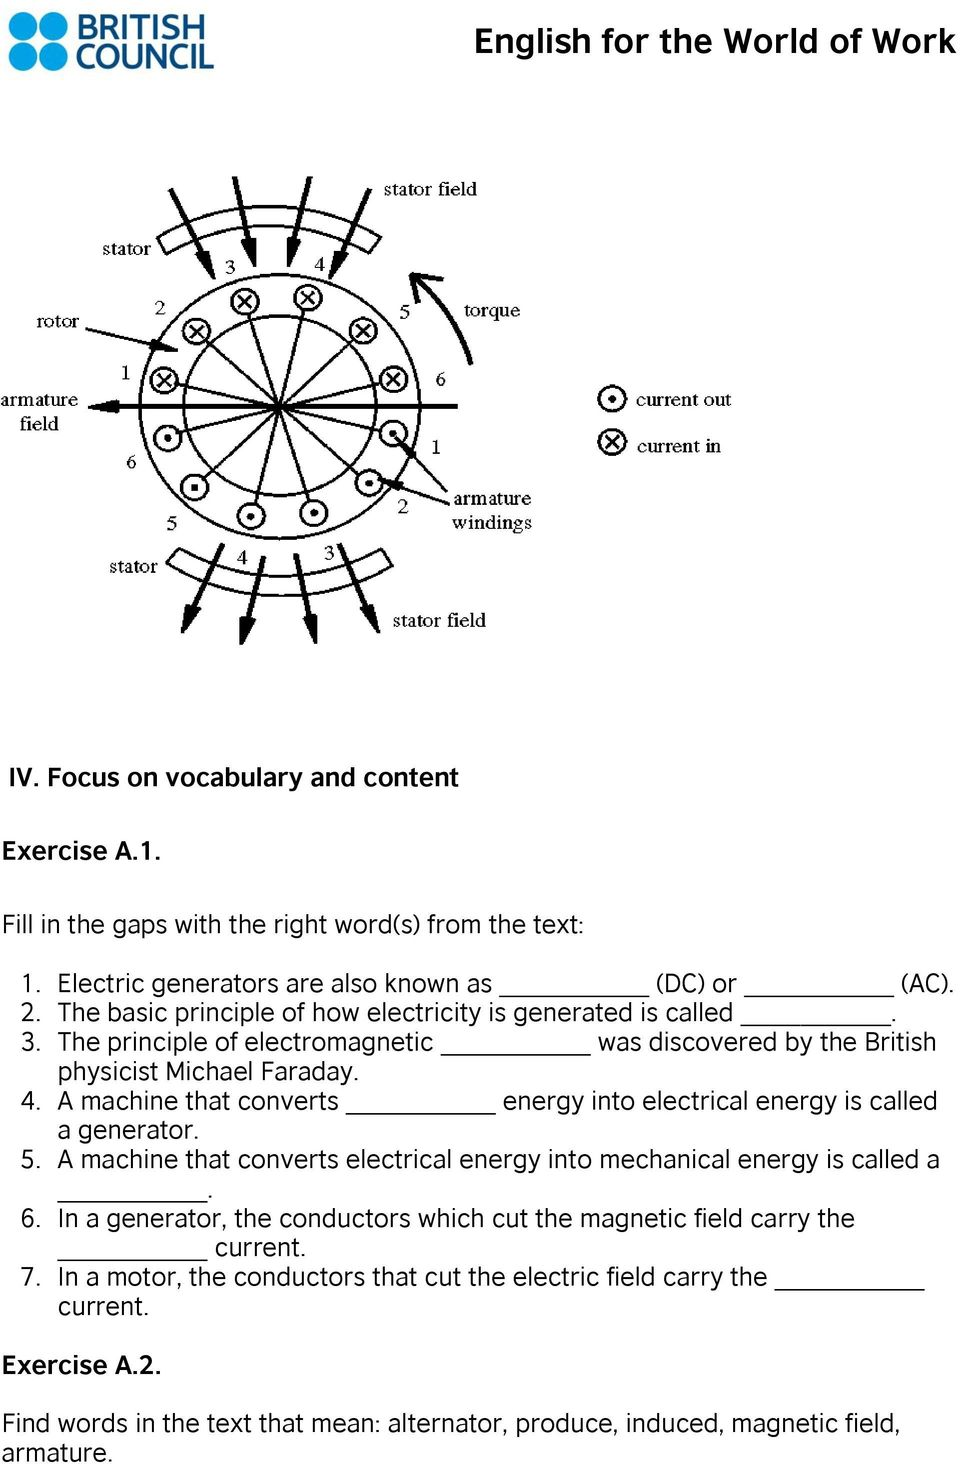 Lesson Plan Technical Electronics Pdf Faraday The Invention Of Electric Motor And Generator A Machine That Converts Energy Into Electrical Is Called 5